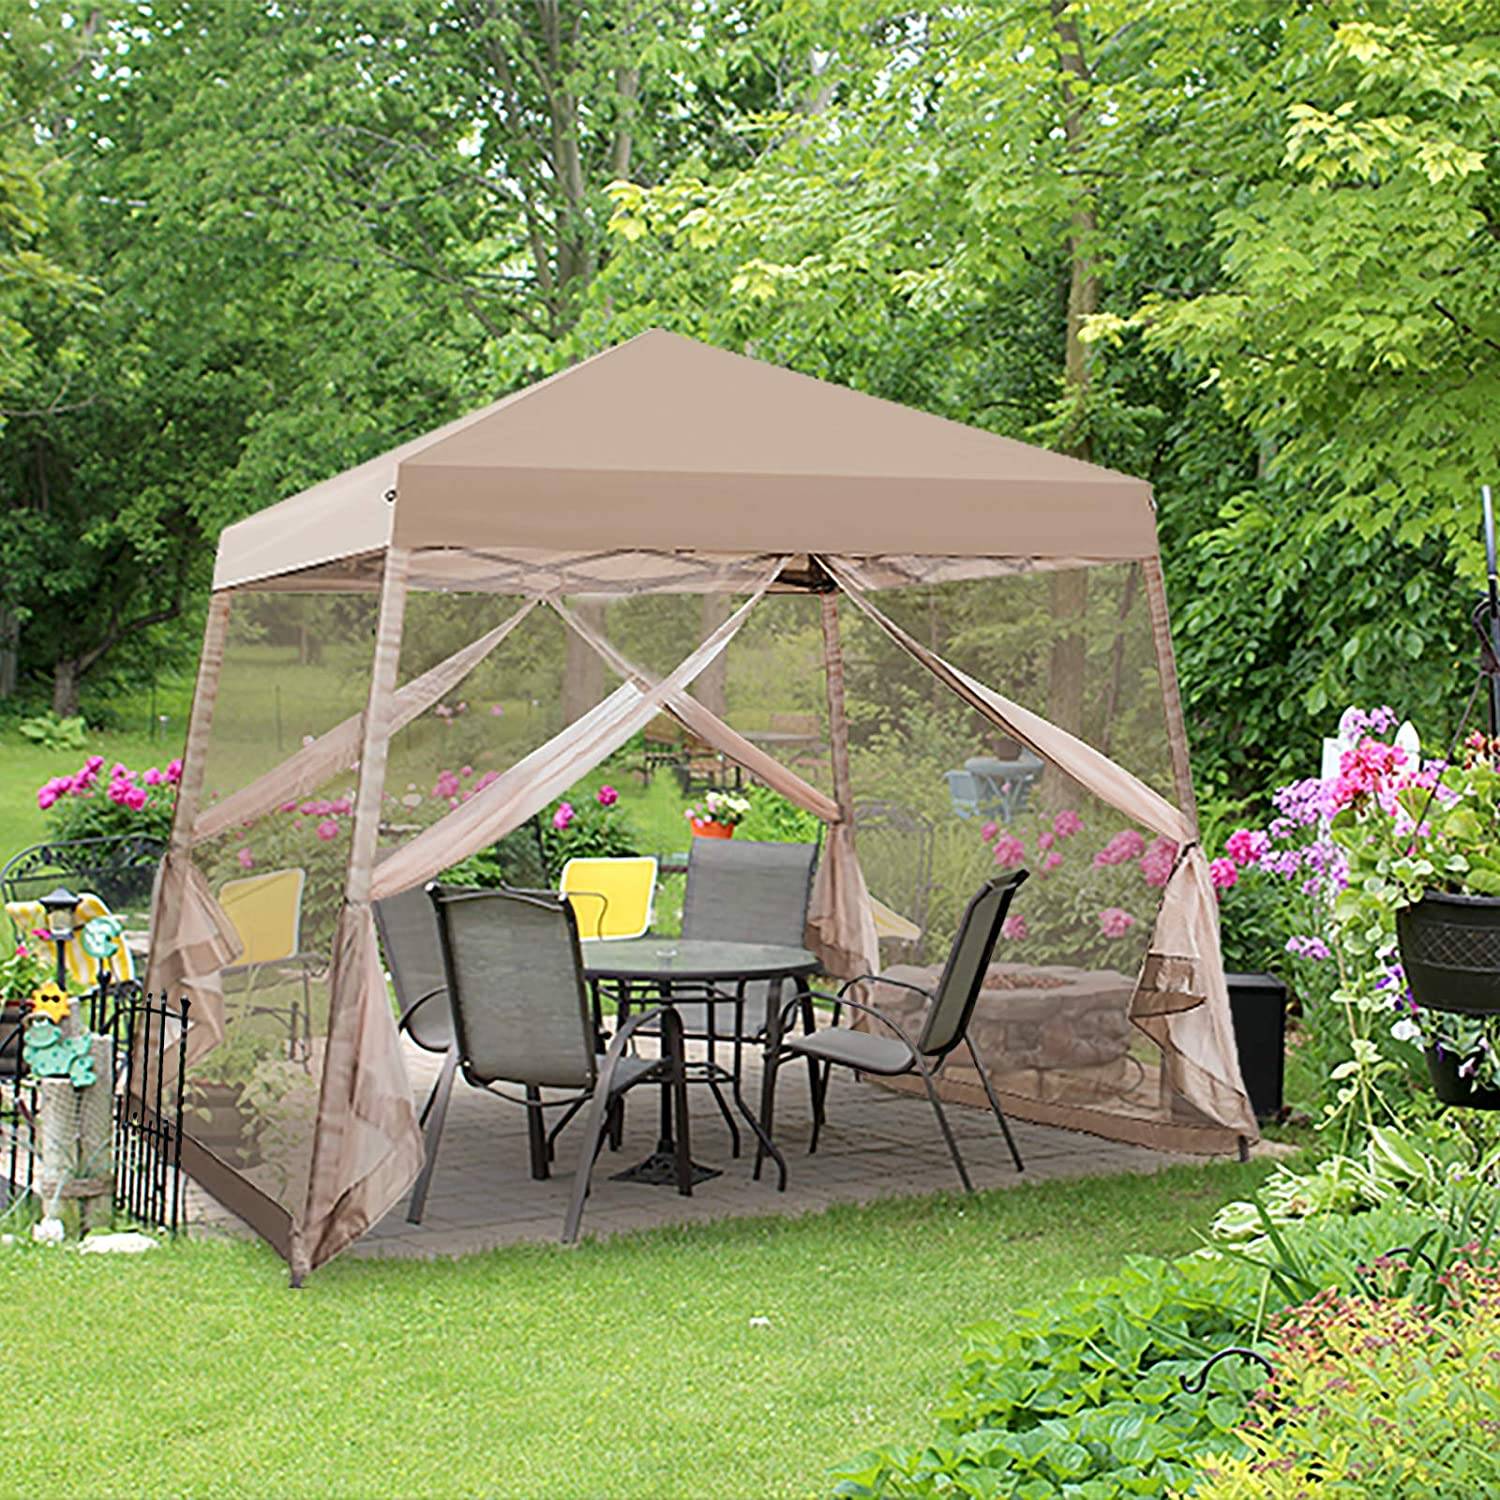 EAGLE PEAK 10' x Slant Leg Easy Up Canopy Sales of SALE items from new works Pop Setup Virginia Beach Mall Tent wit